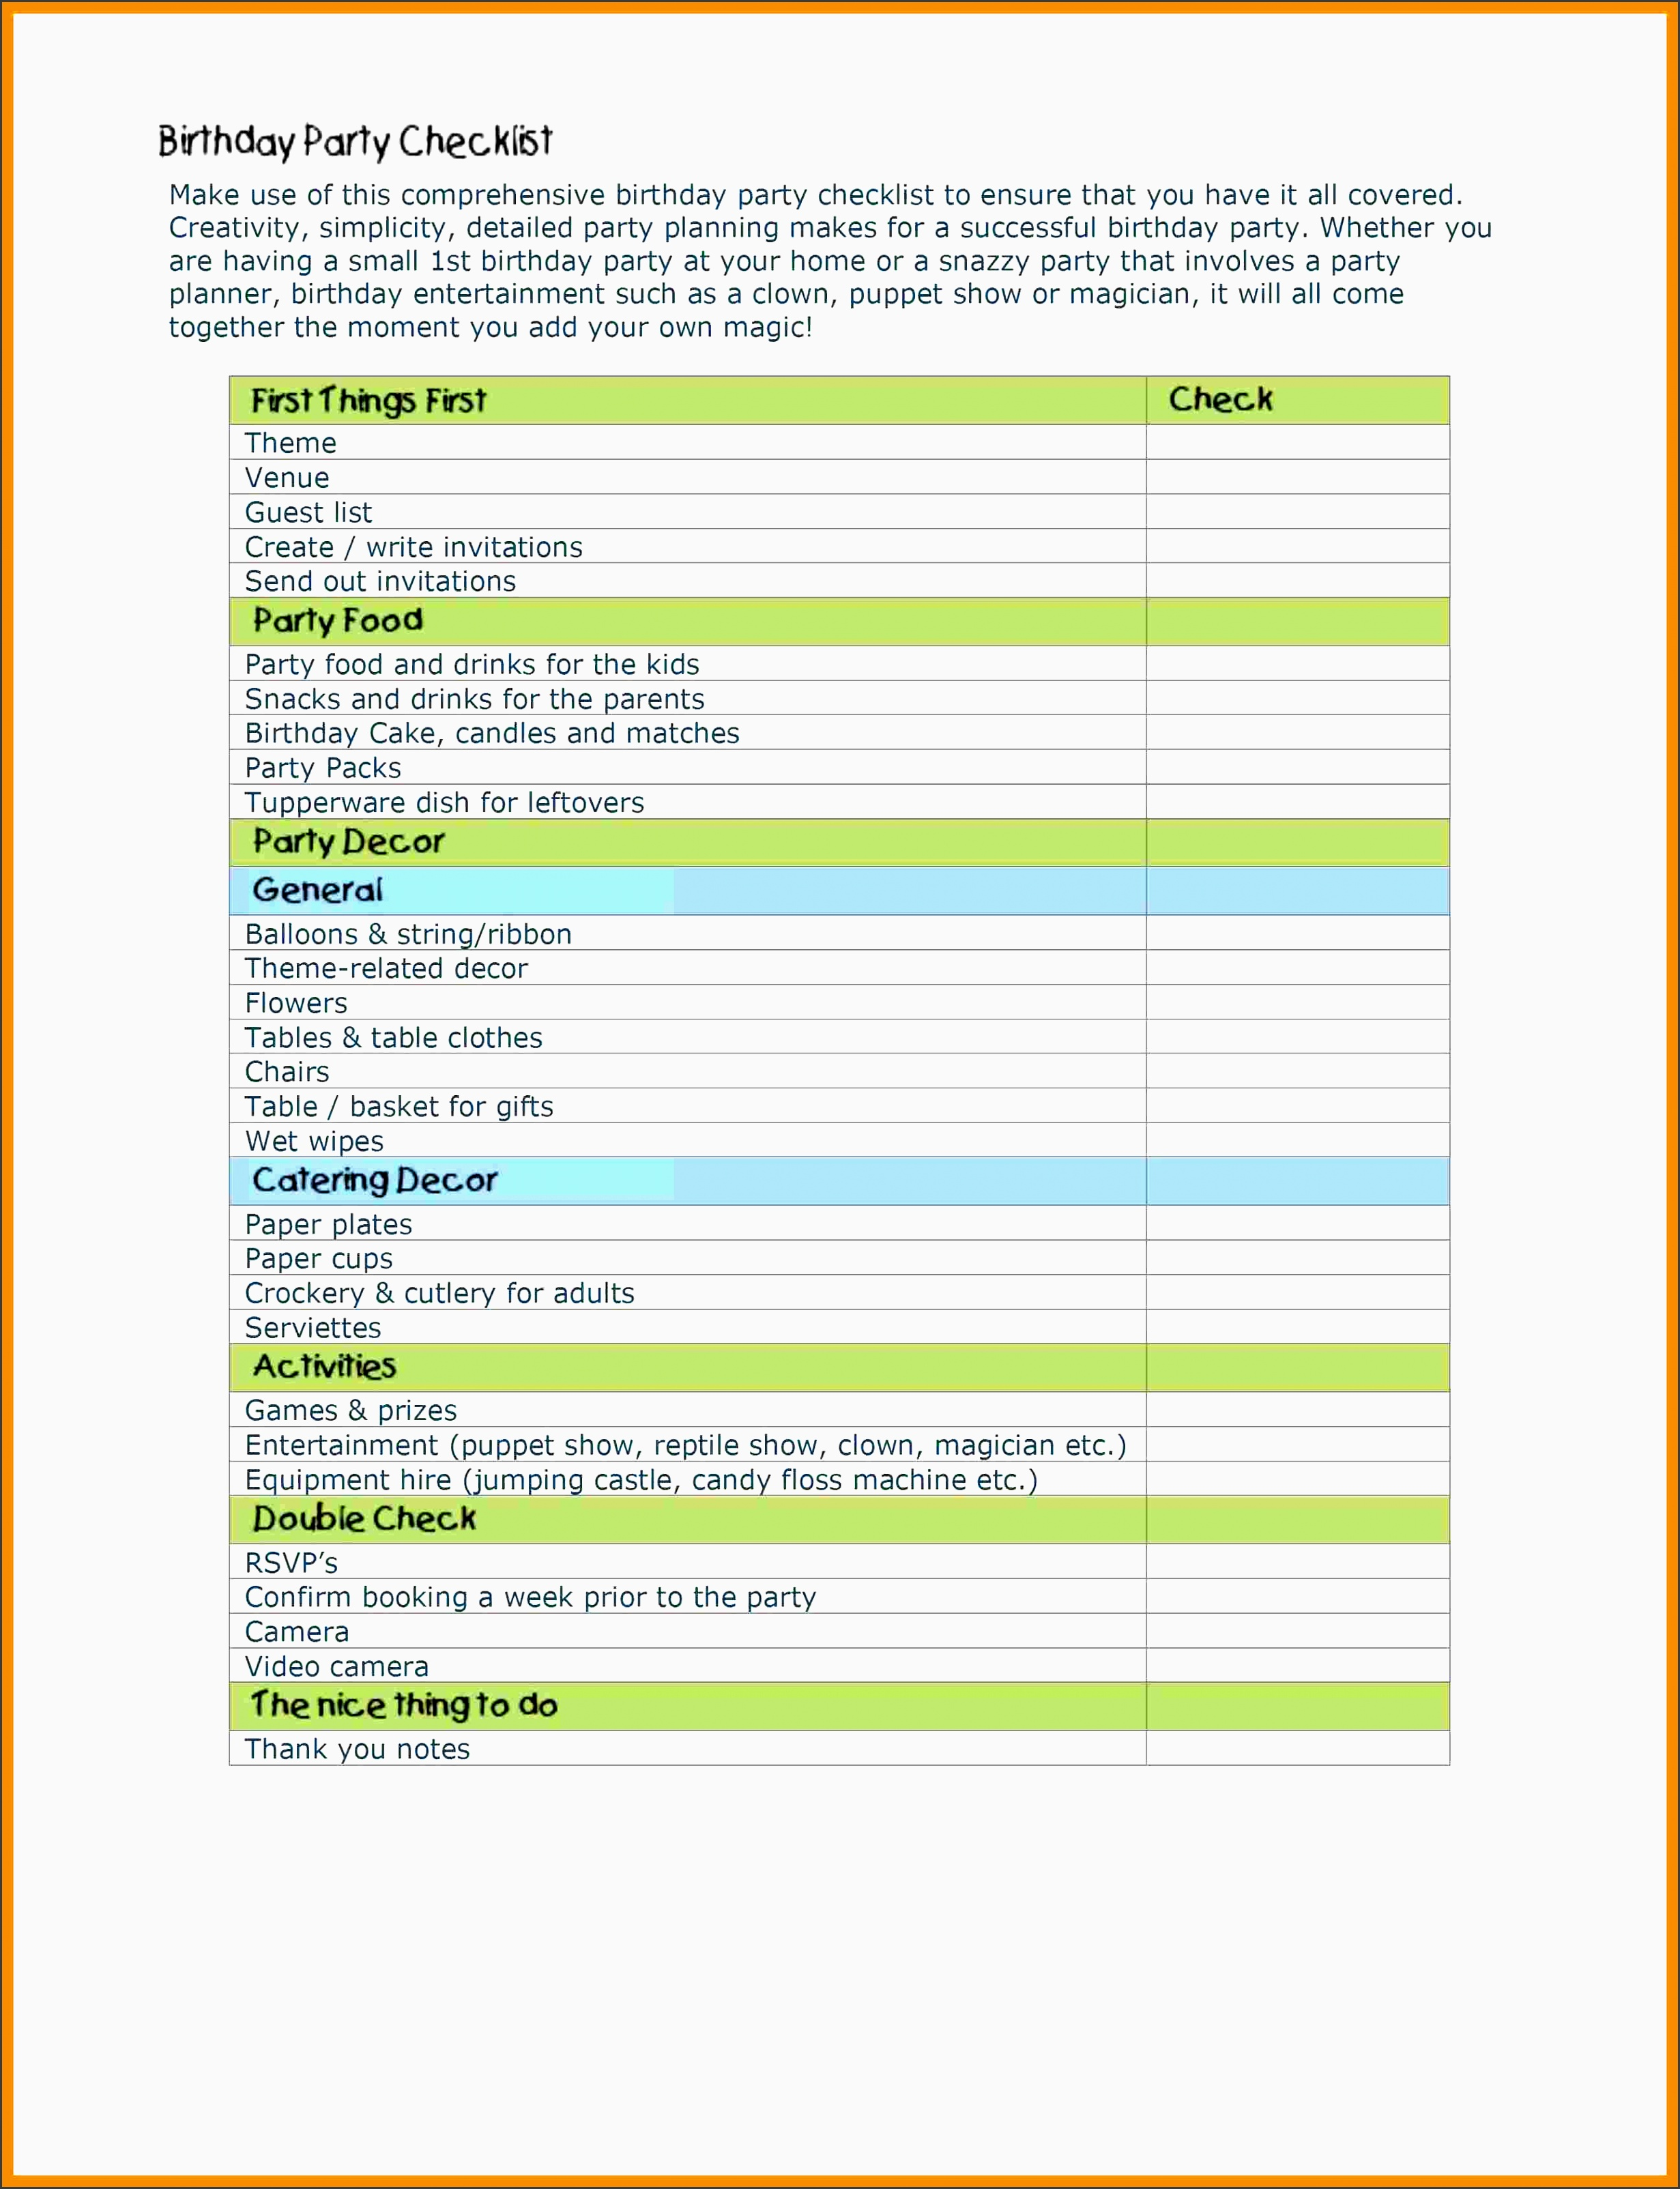 party checklist templaterthday party planning checklist template stu0nsf0